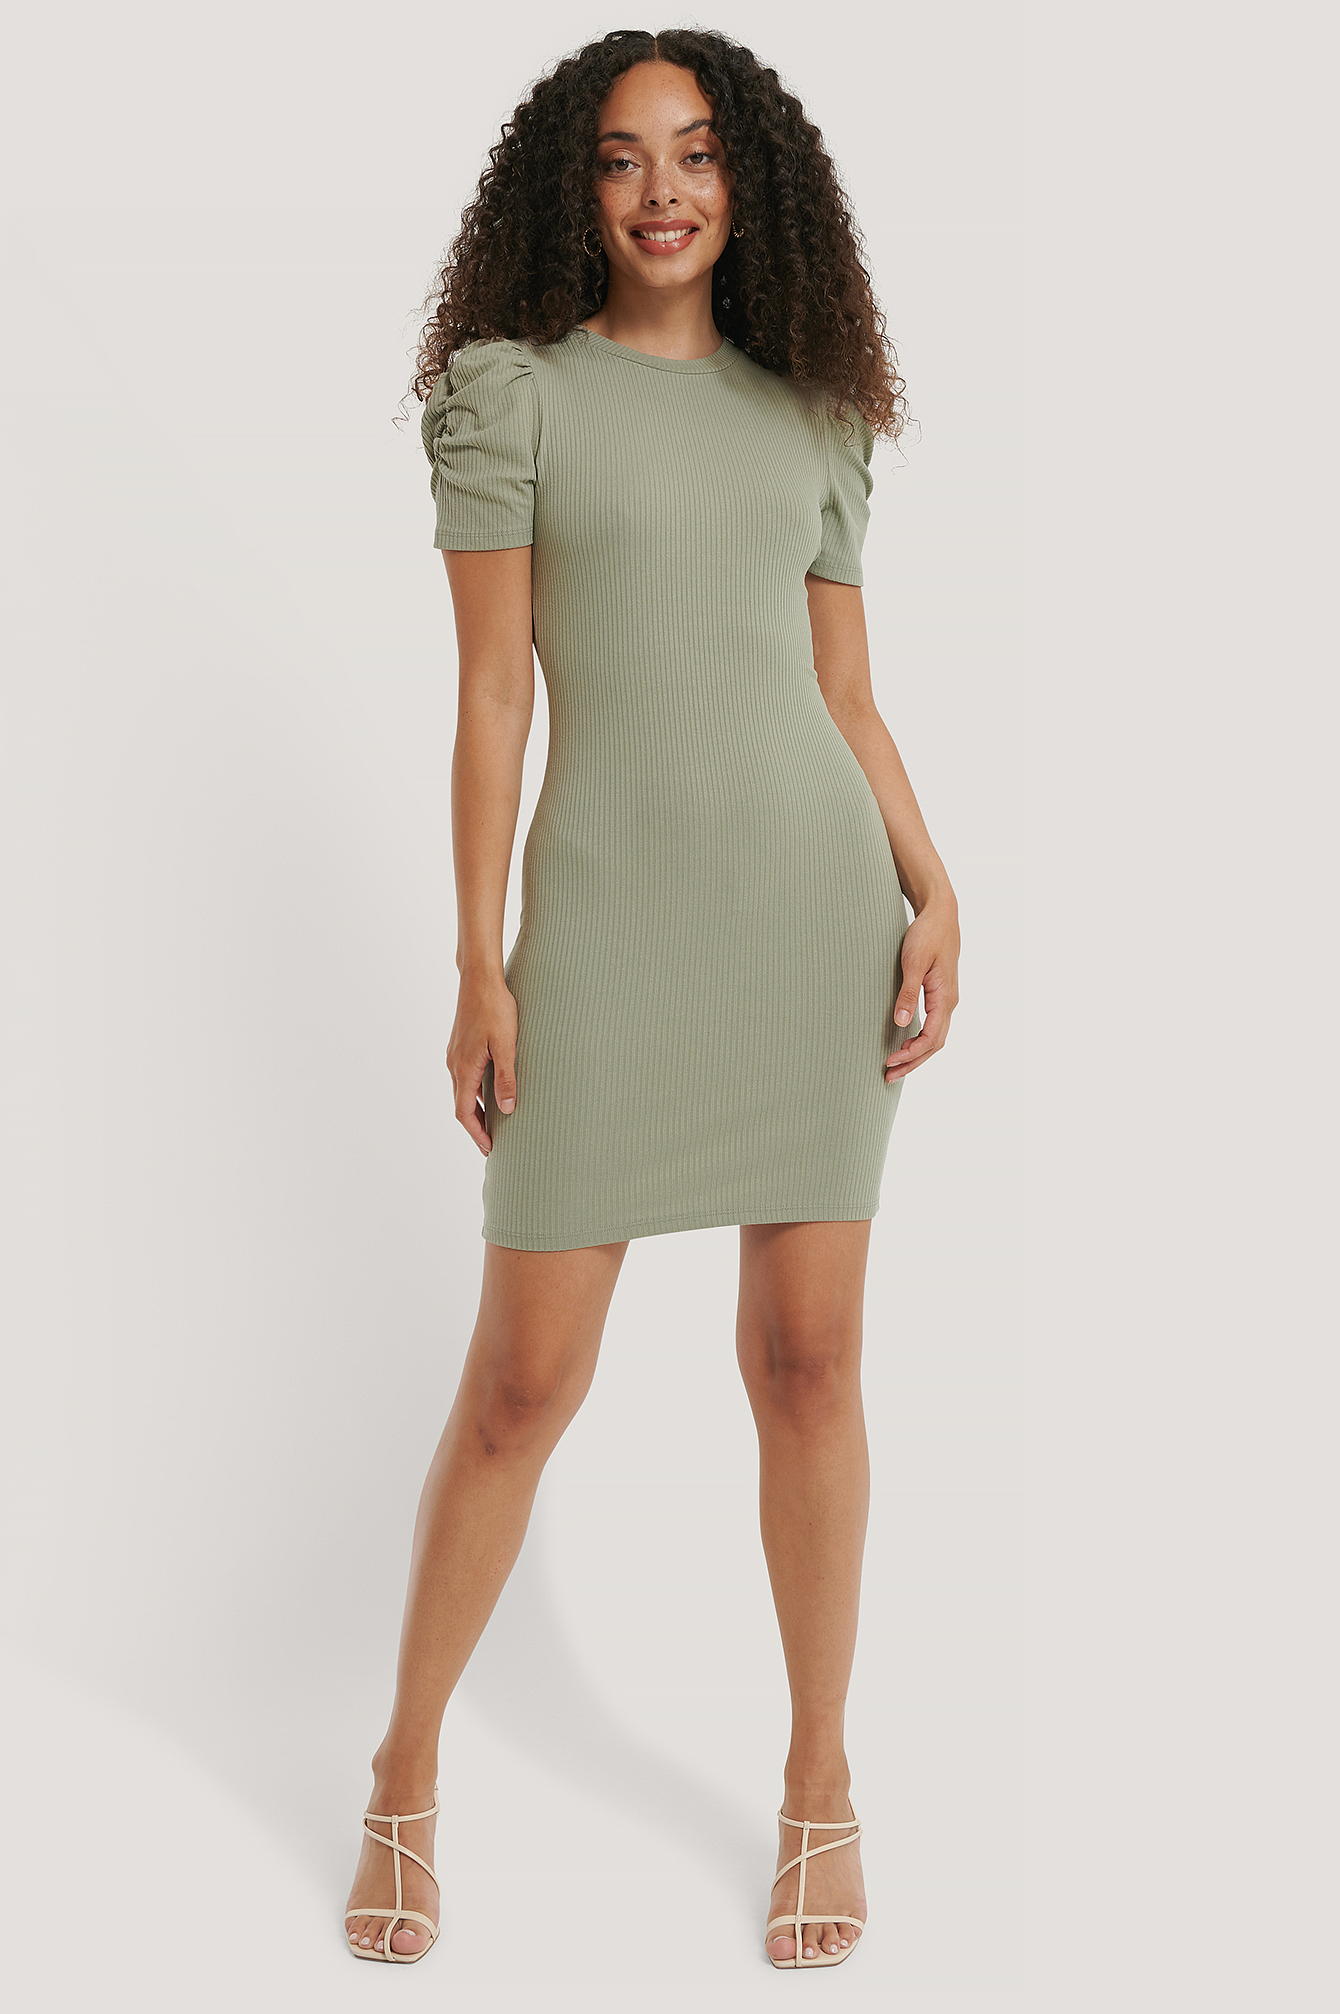 Dusty Green Puff Shoulder Short Sleeve Dress